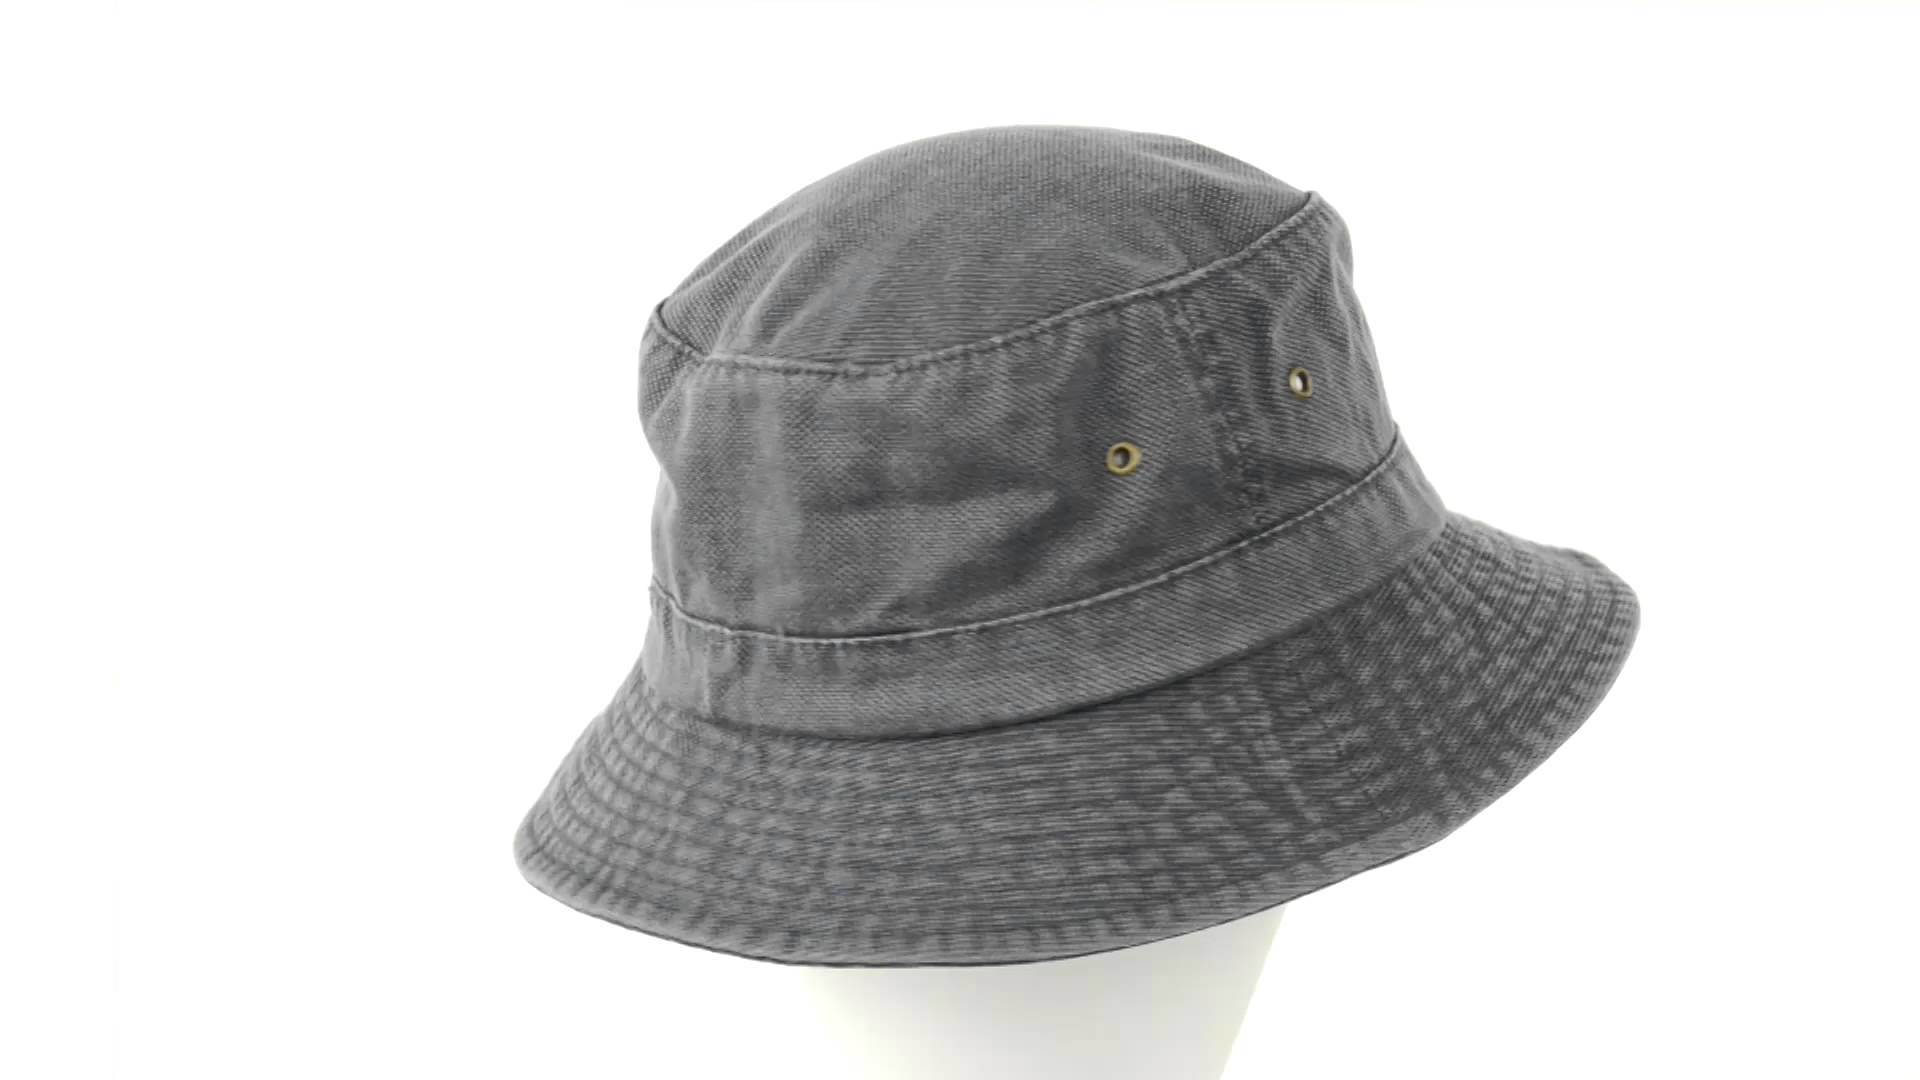 60dc1207488 China Plain Washed Canvas Fishing Hat Fisherman Hat - China Bucket ...